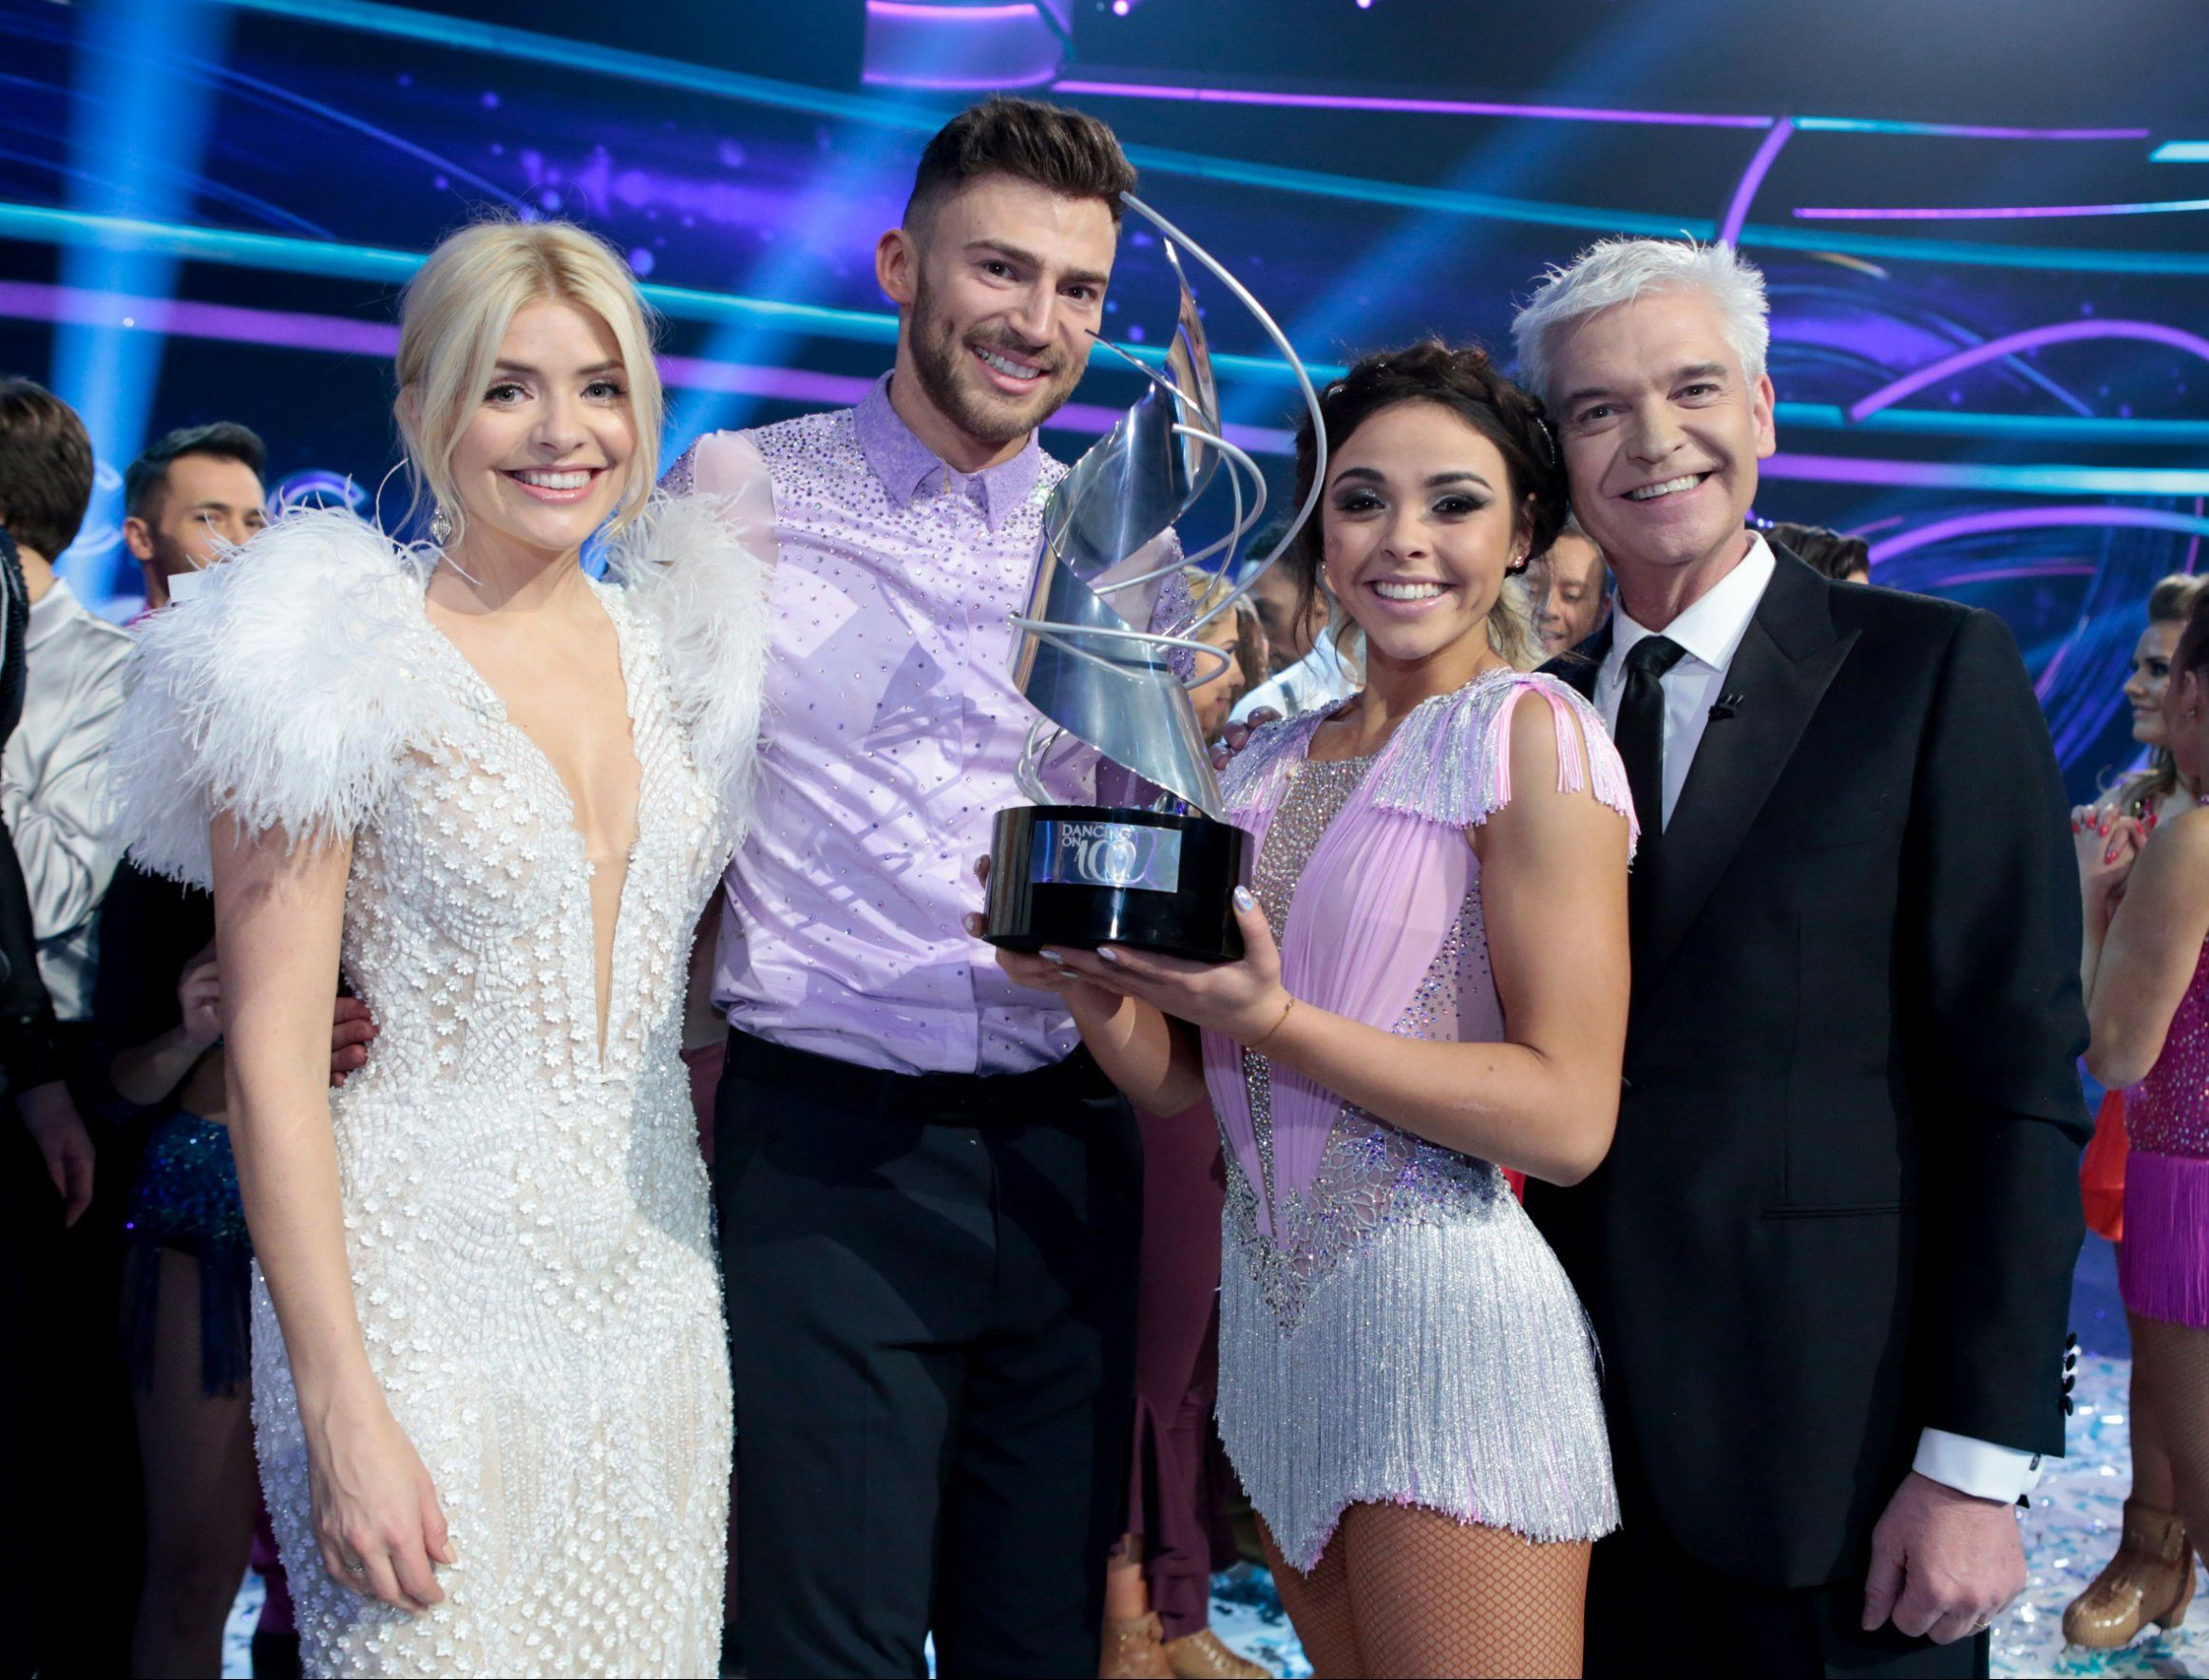 Jake Quickenden 'won't have to do another reality TV show' as he wins Dancing On Ice 2018